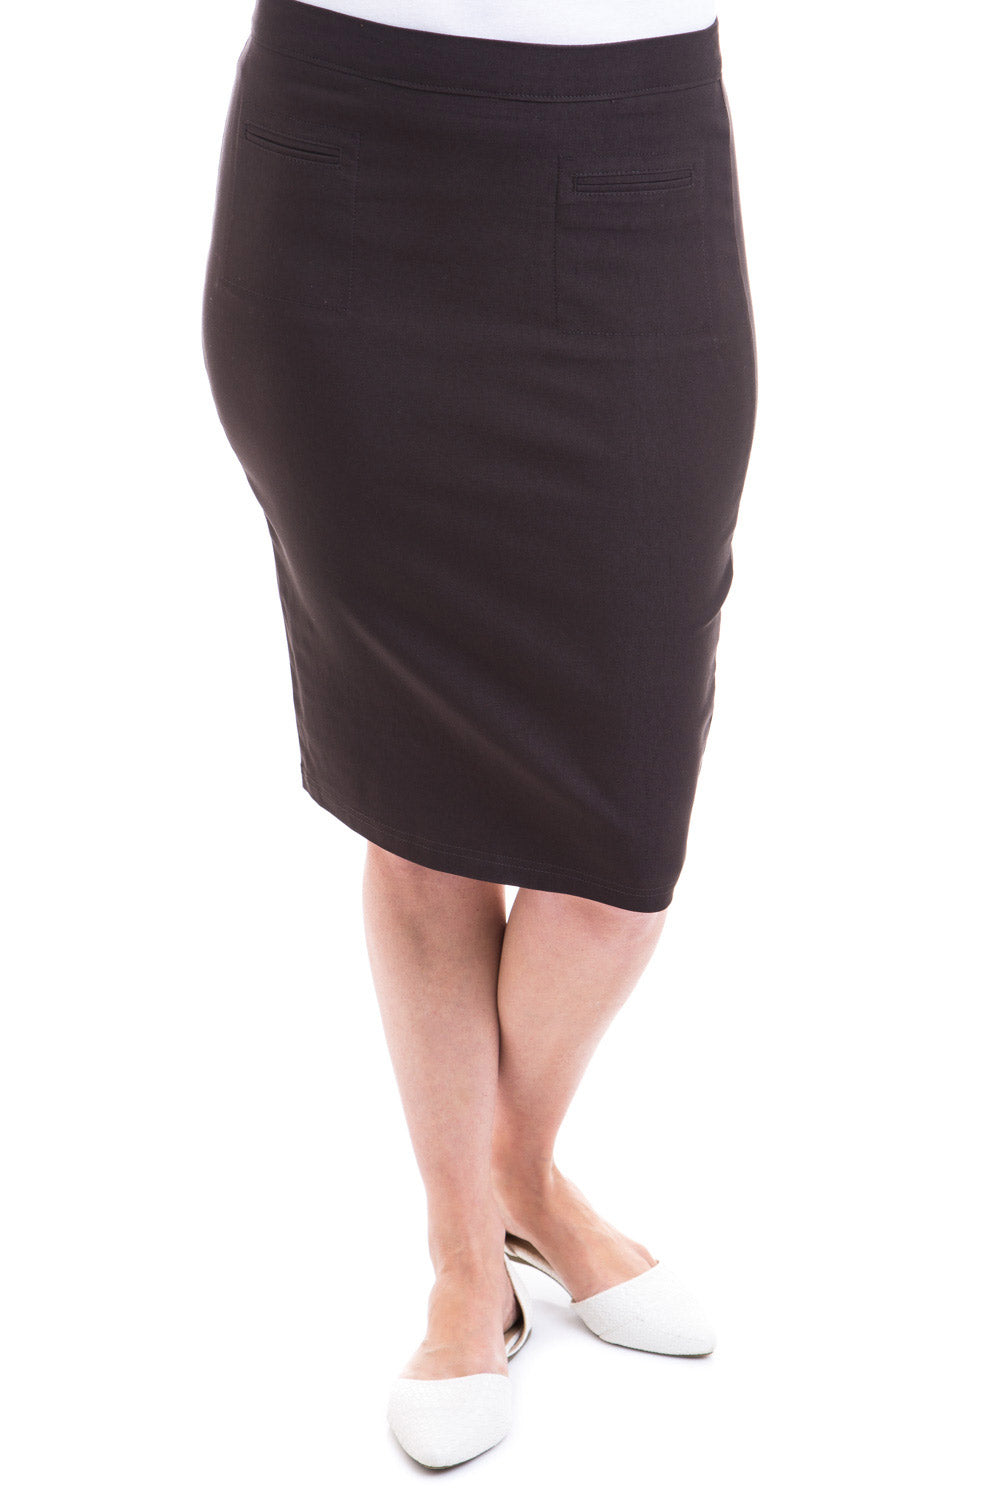 Type 1 Chocolate Box Pencil Skirt